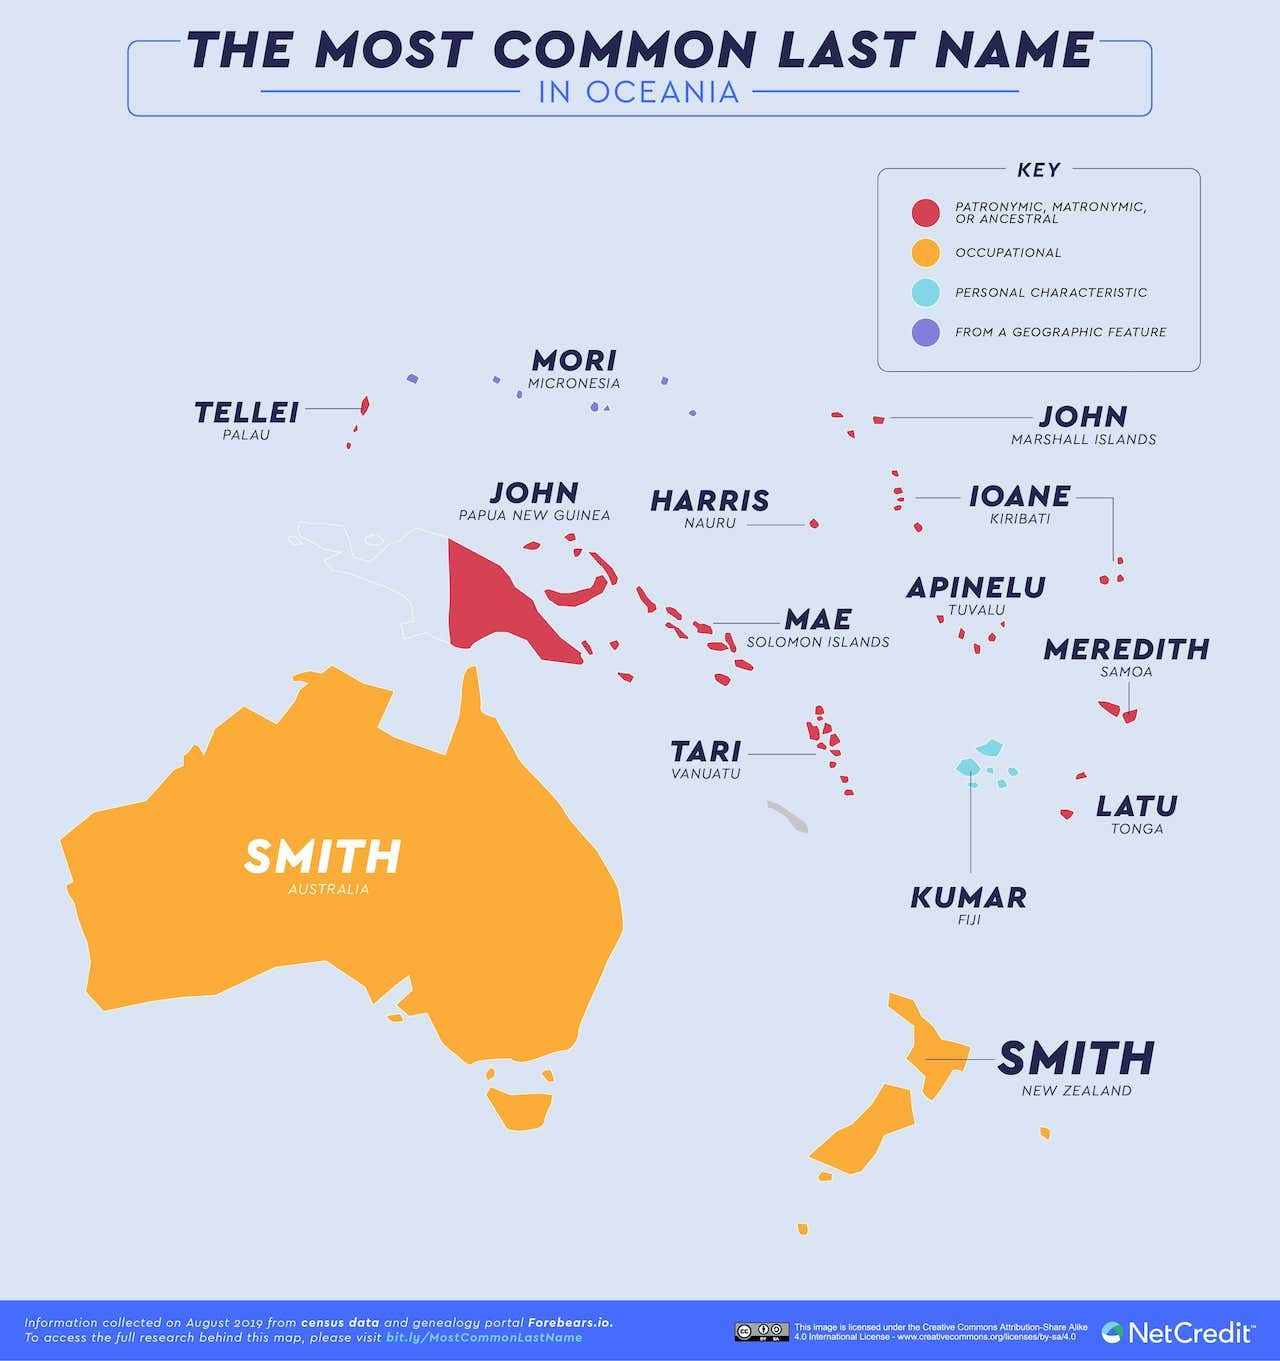 07_The-most-common-last-name-in-every-country_Oceania